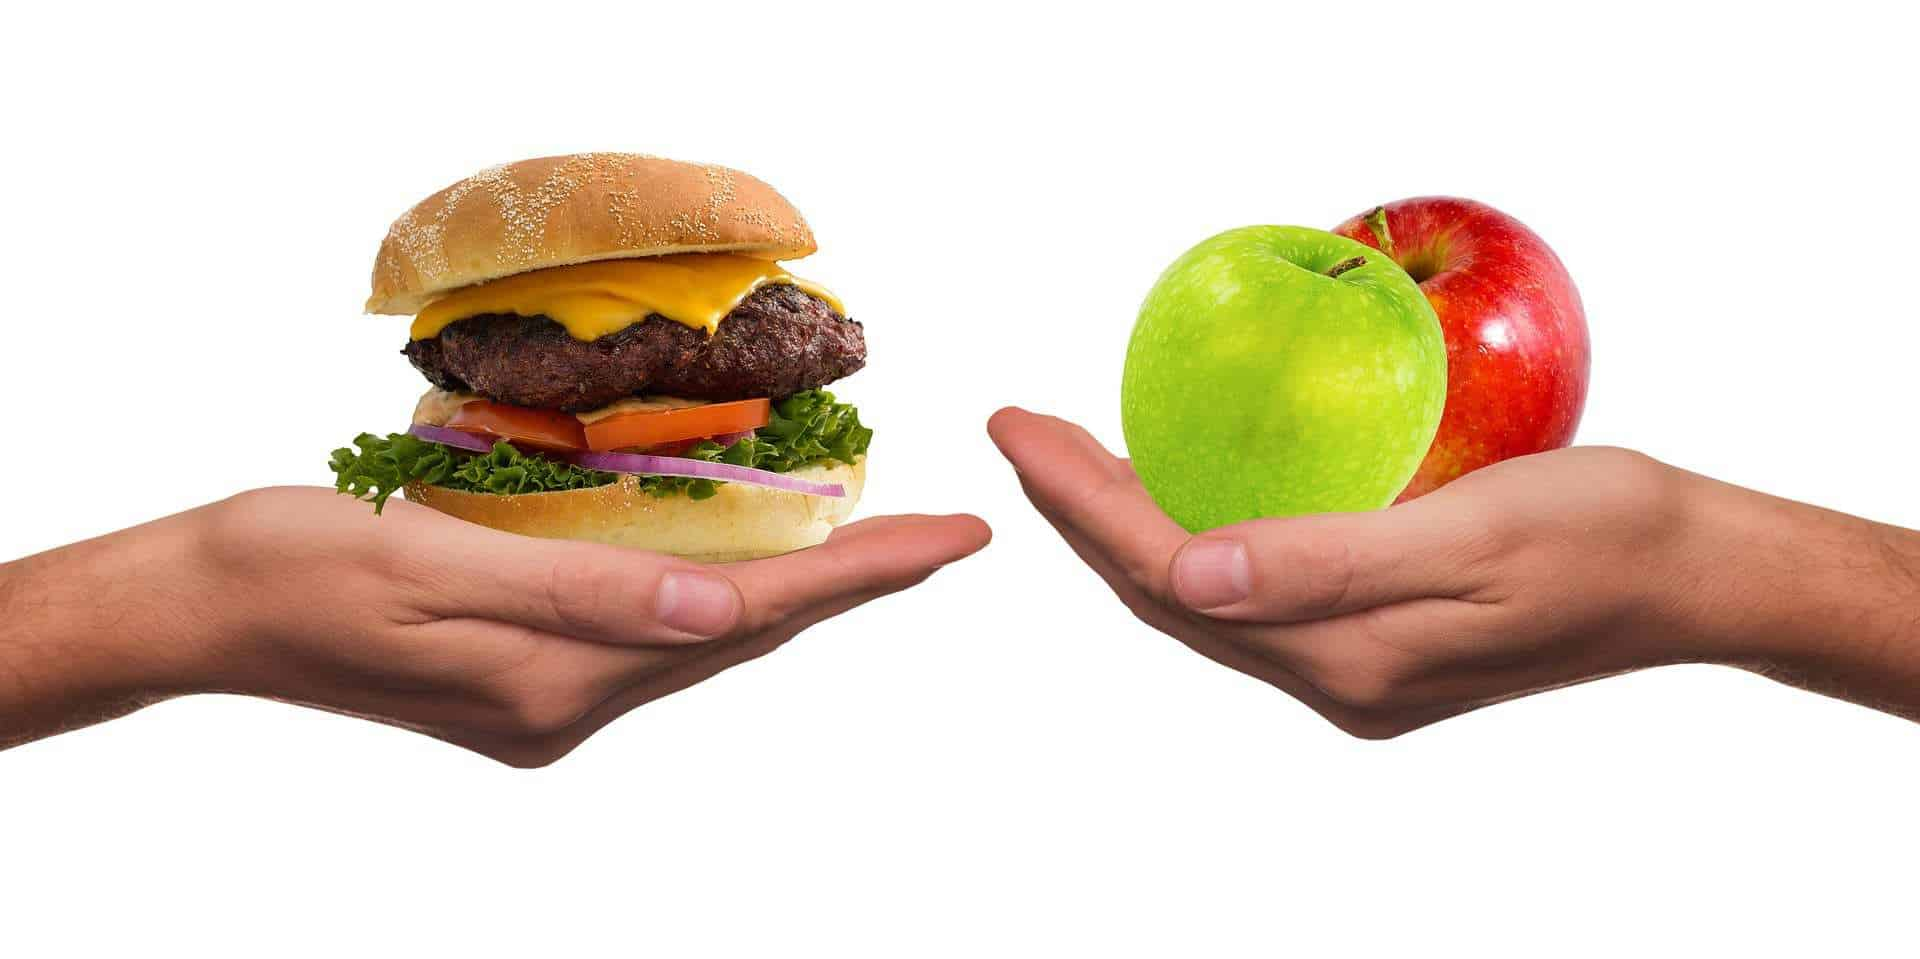 Consuming high-fat content meat vs a plant-based diet?